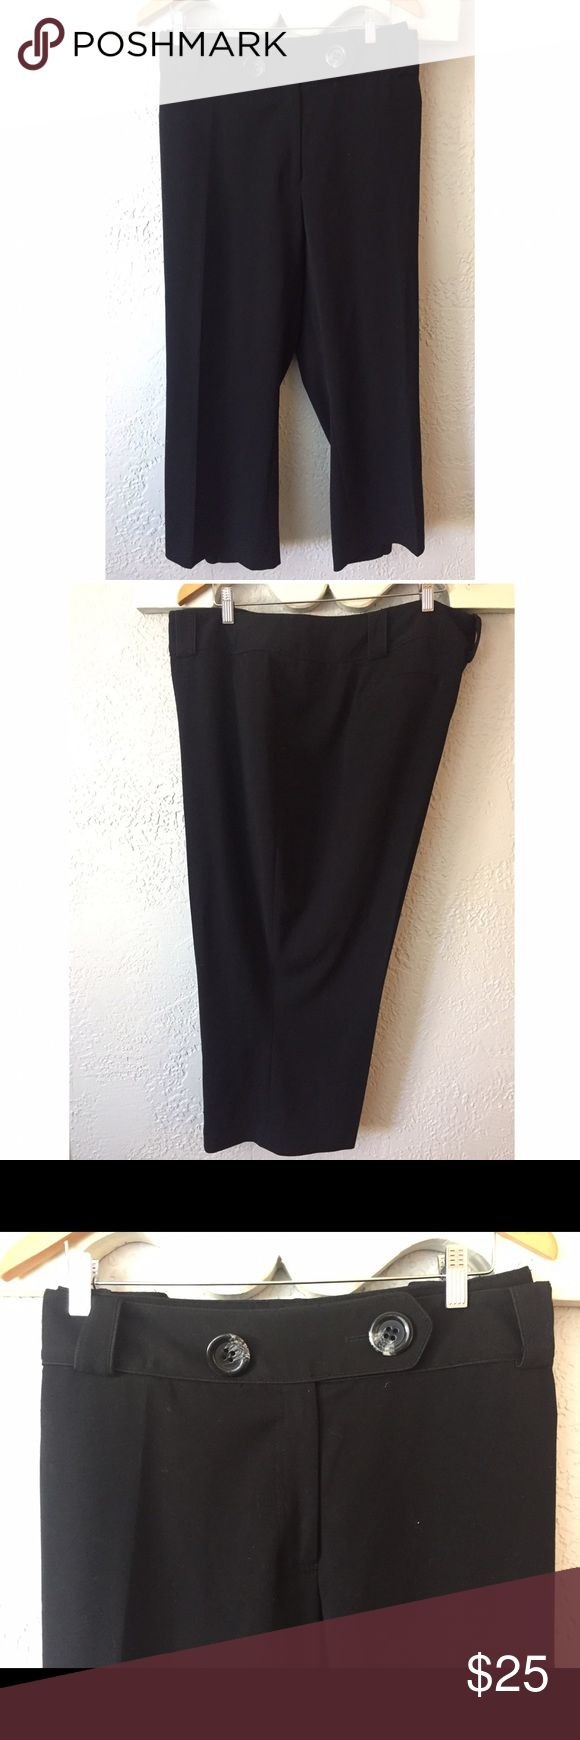 Plus size black crop pants size 28 lane Bryant These black crop pants have been worn very little.  Size 28 from Lane Bryant. 63% polyester 33% rayon and 4% spandex. Machine wash cold/tumble dry low or hang to dry. From smoke free home. Lane Bryant Pants Ankle & Cropped